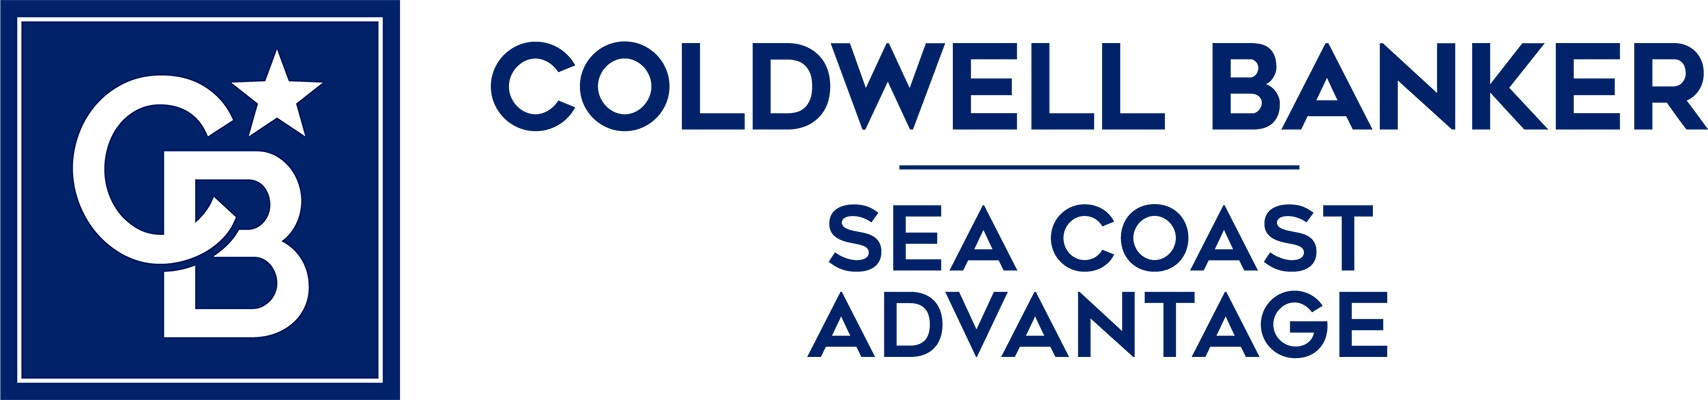 Kim Samtmann - Coldwell Banker Sea Coast Advantage Realty